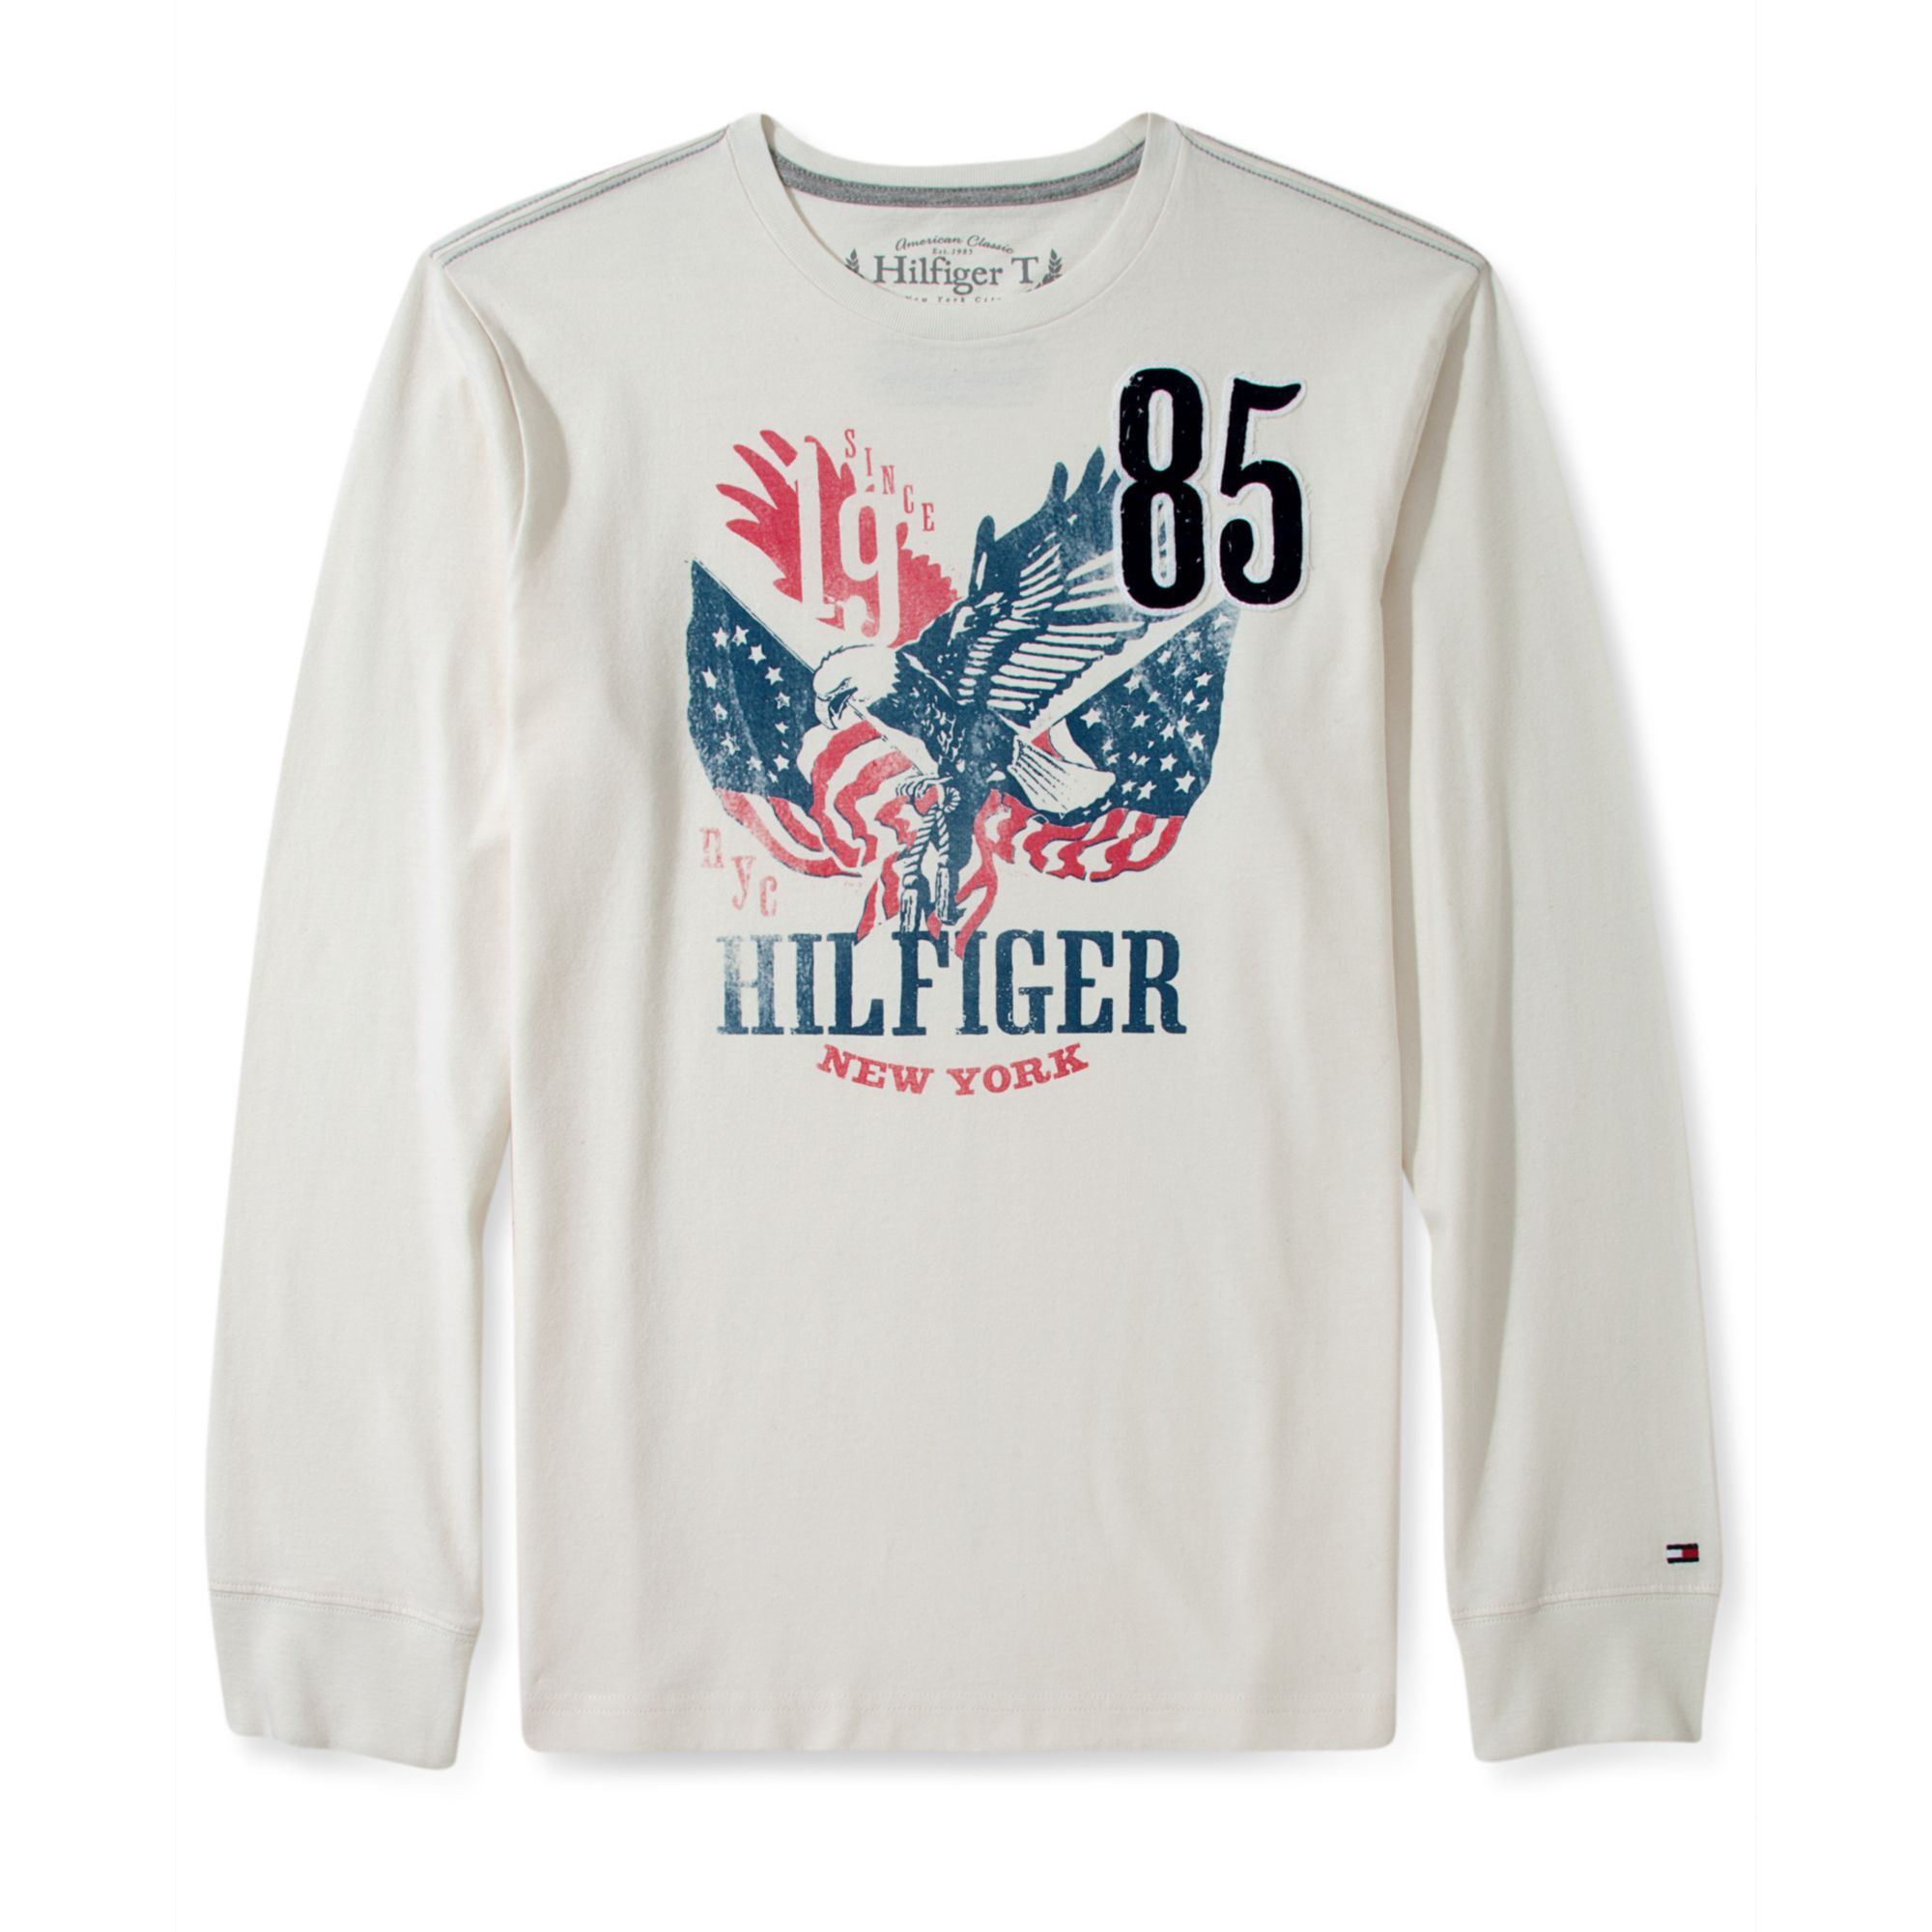 tommy hilfiger long sleeve brody t shirt in white for men fence white. Black Bedroom Furniture Sets. Home Design Ideas